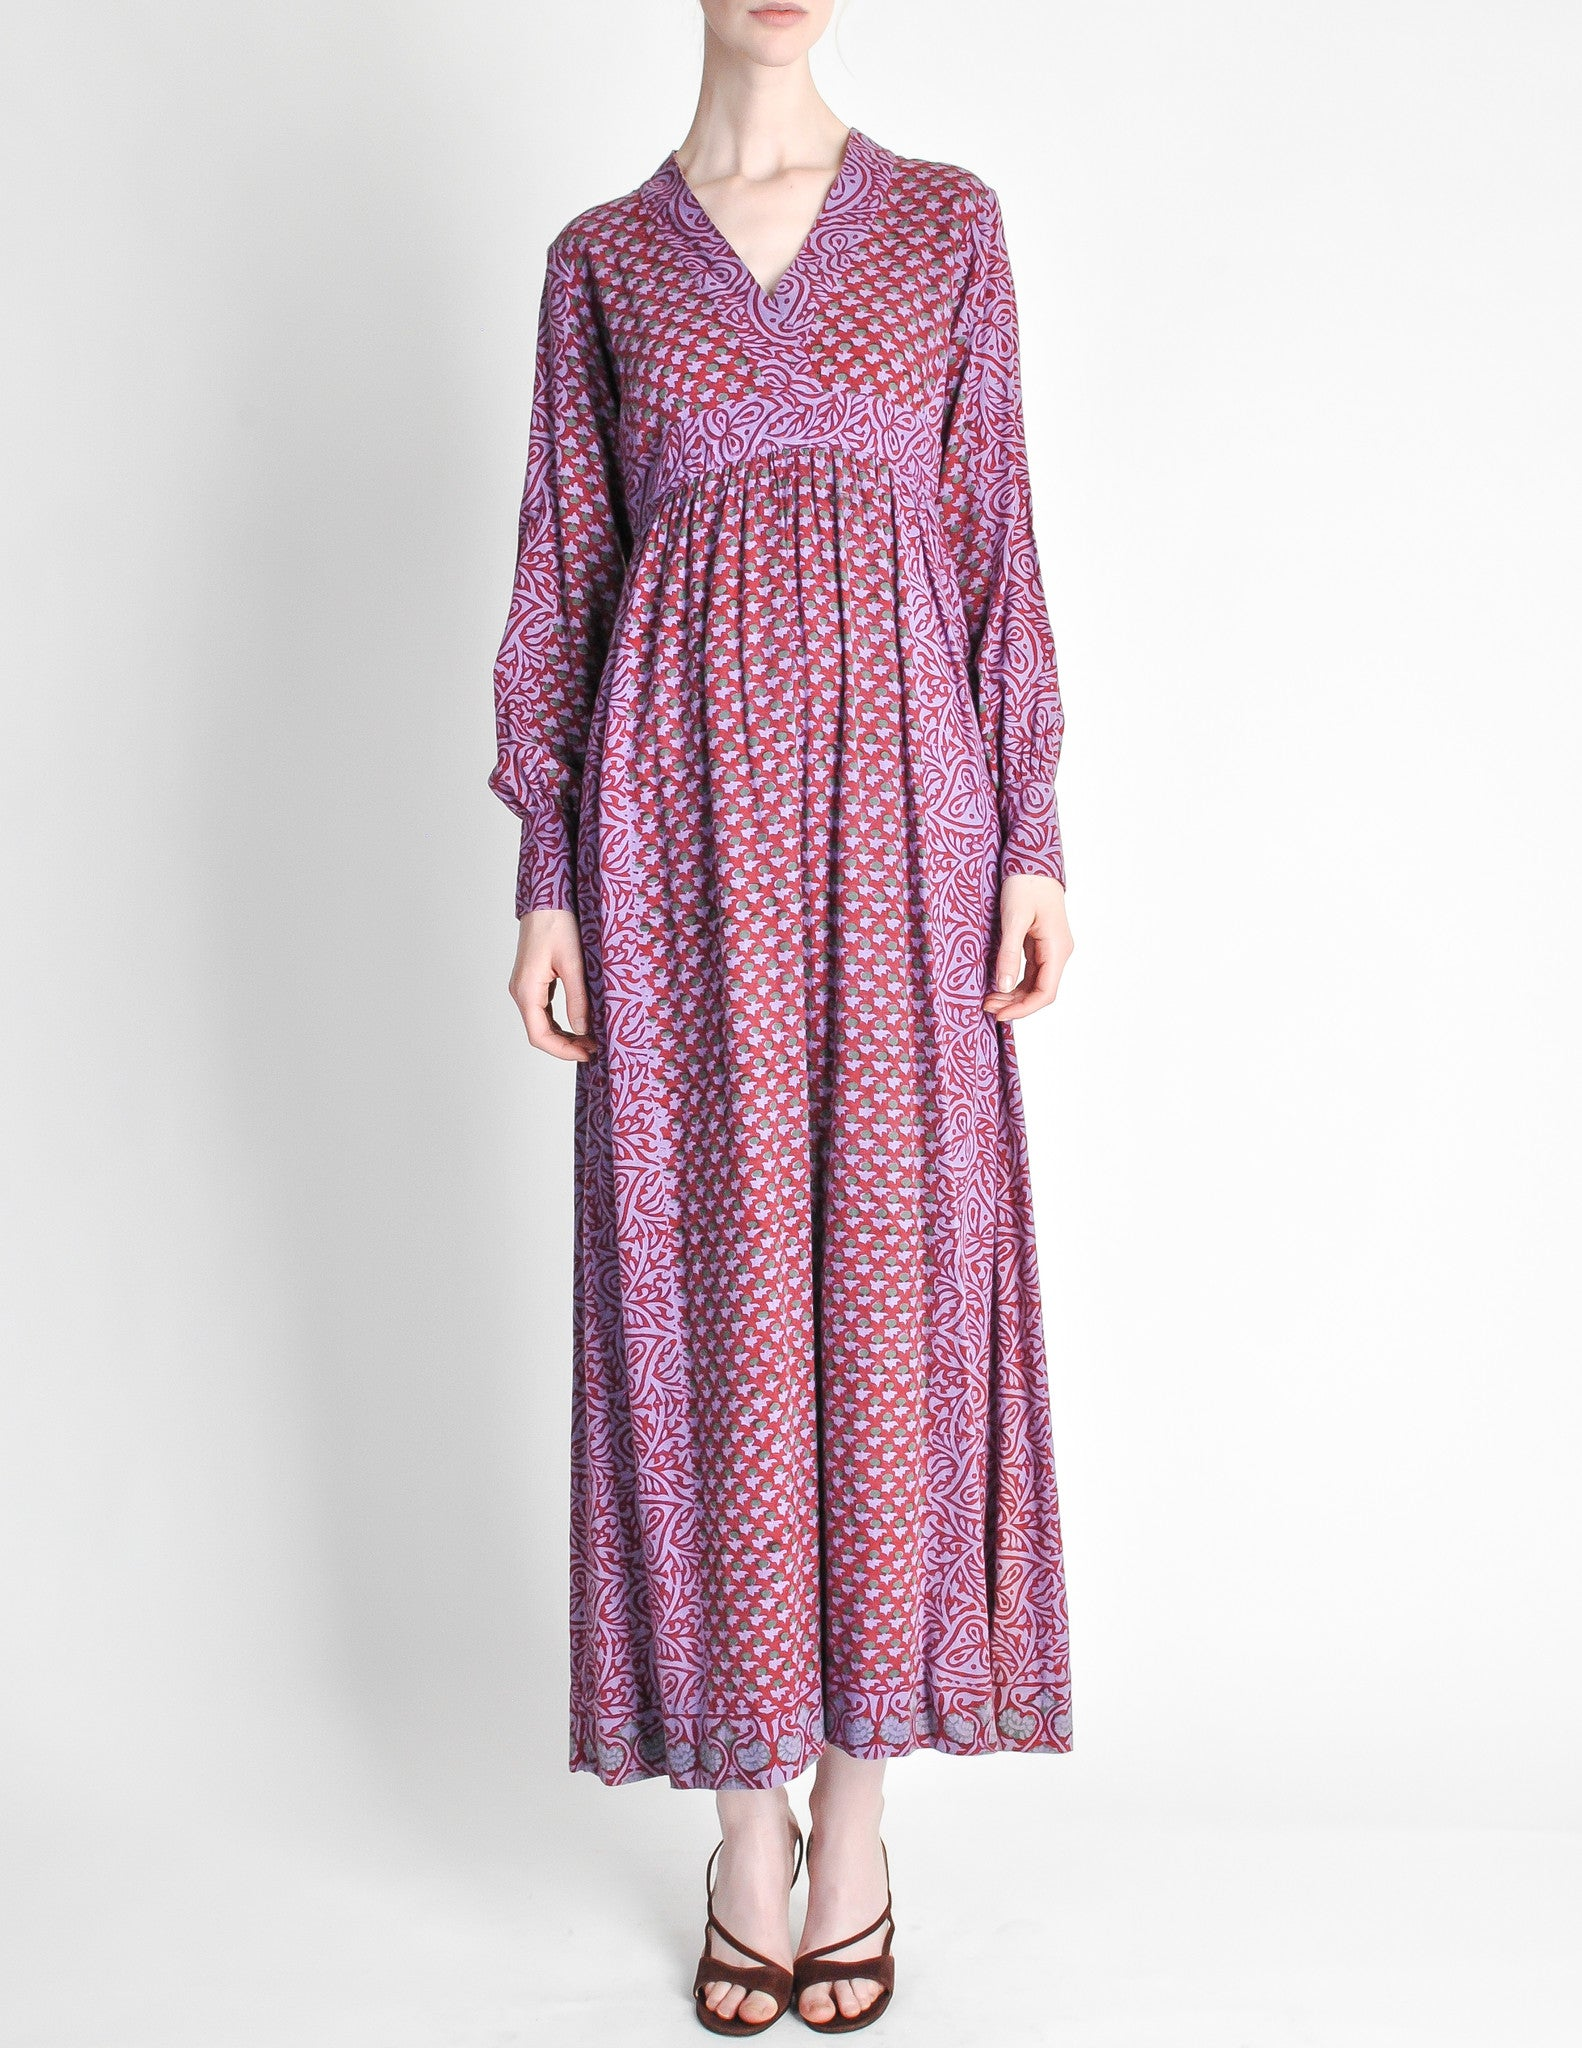 Vintage 1970s Purple Indian Block Print Maxi Dress From